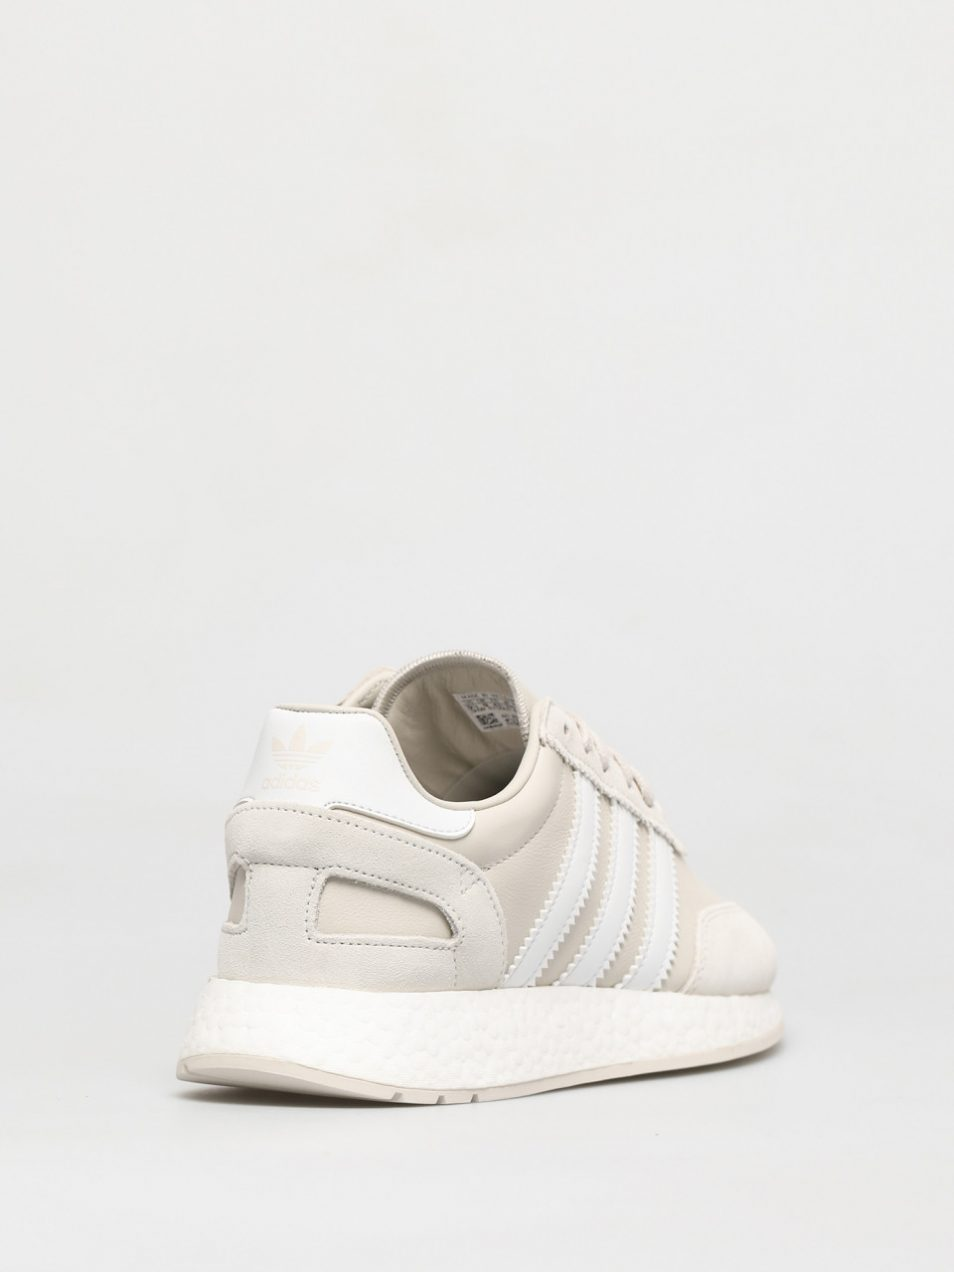 Adidas Originals I-5923 Sneaker Raw White